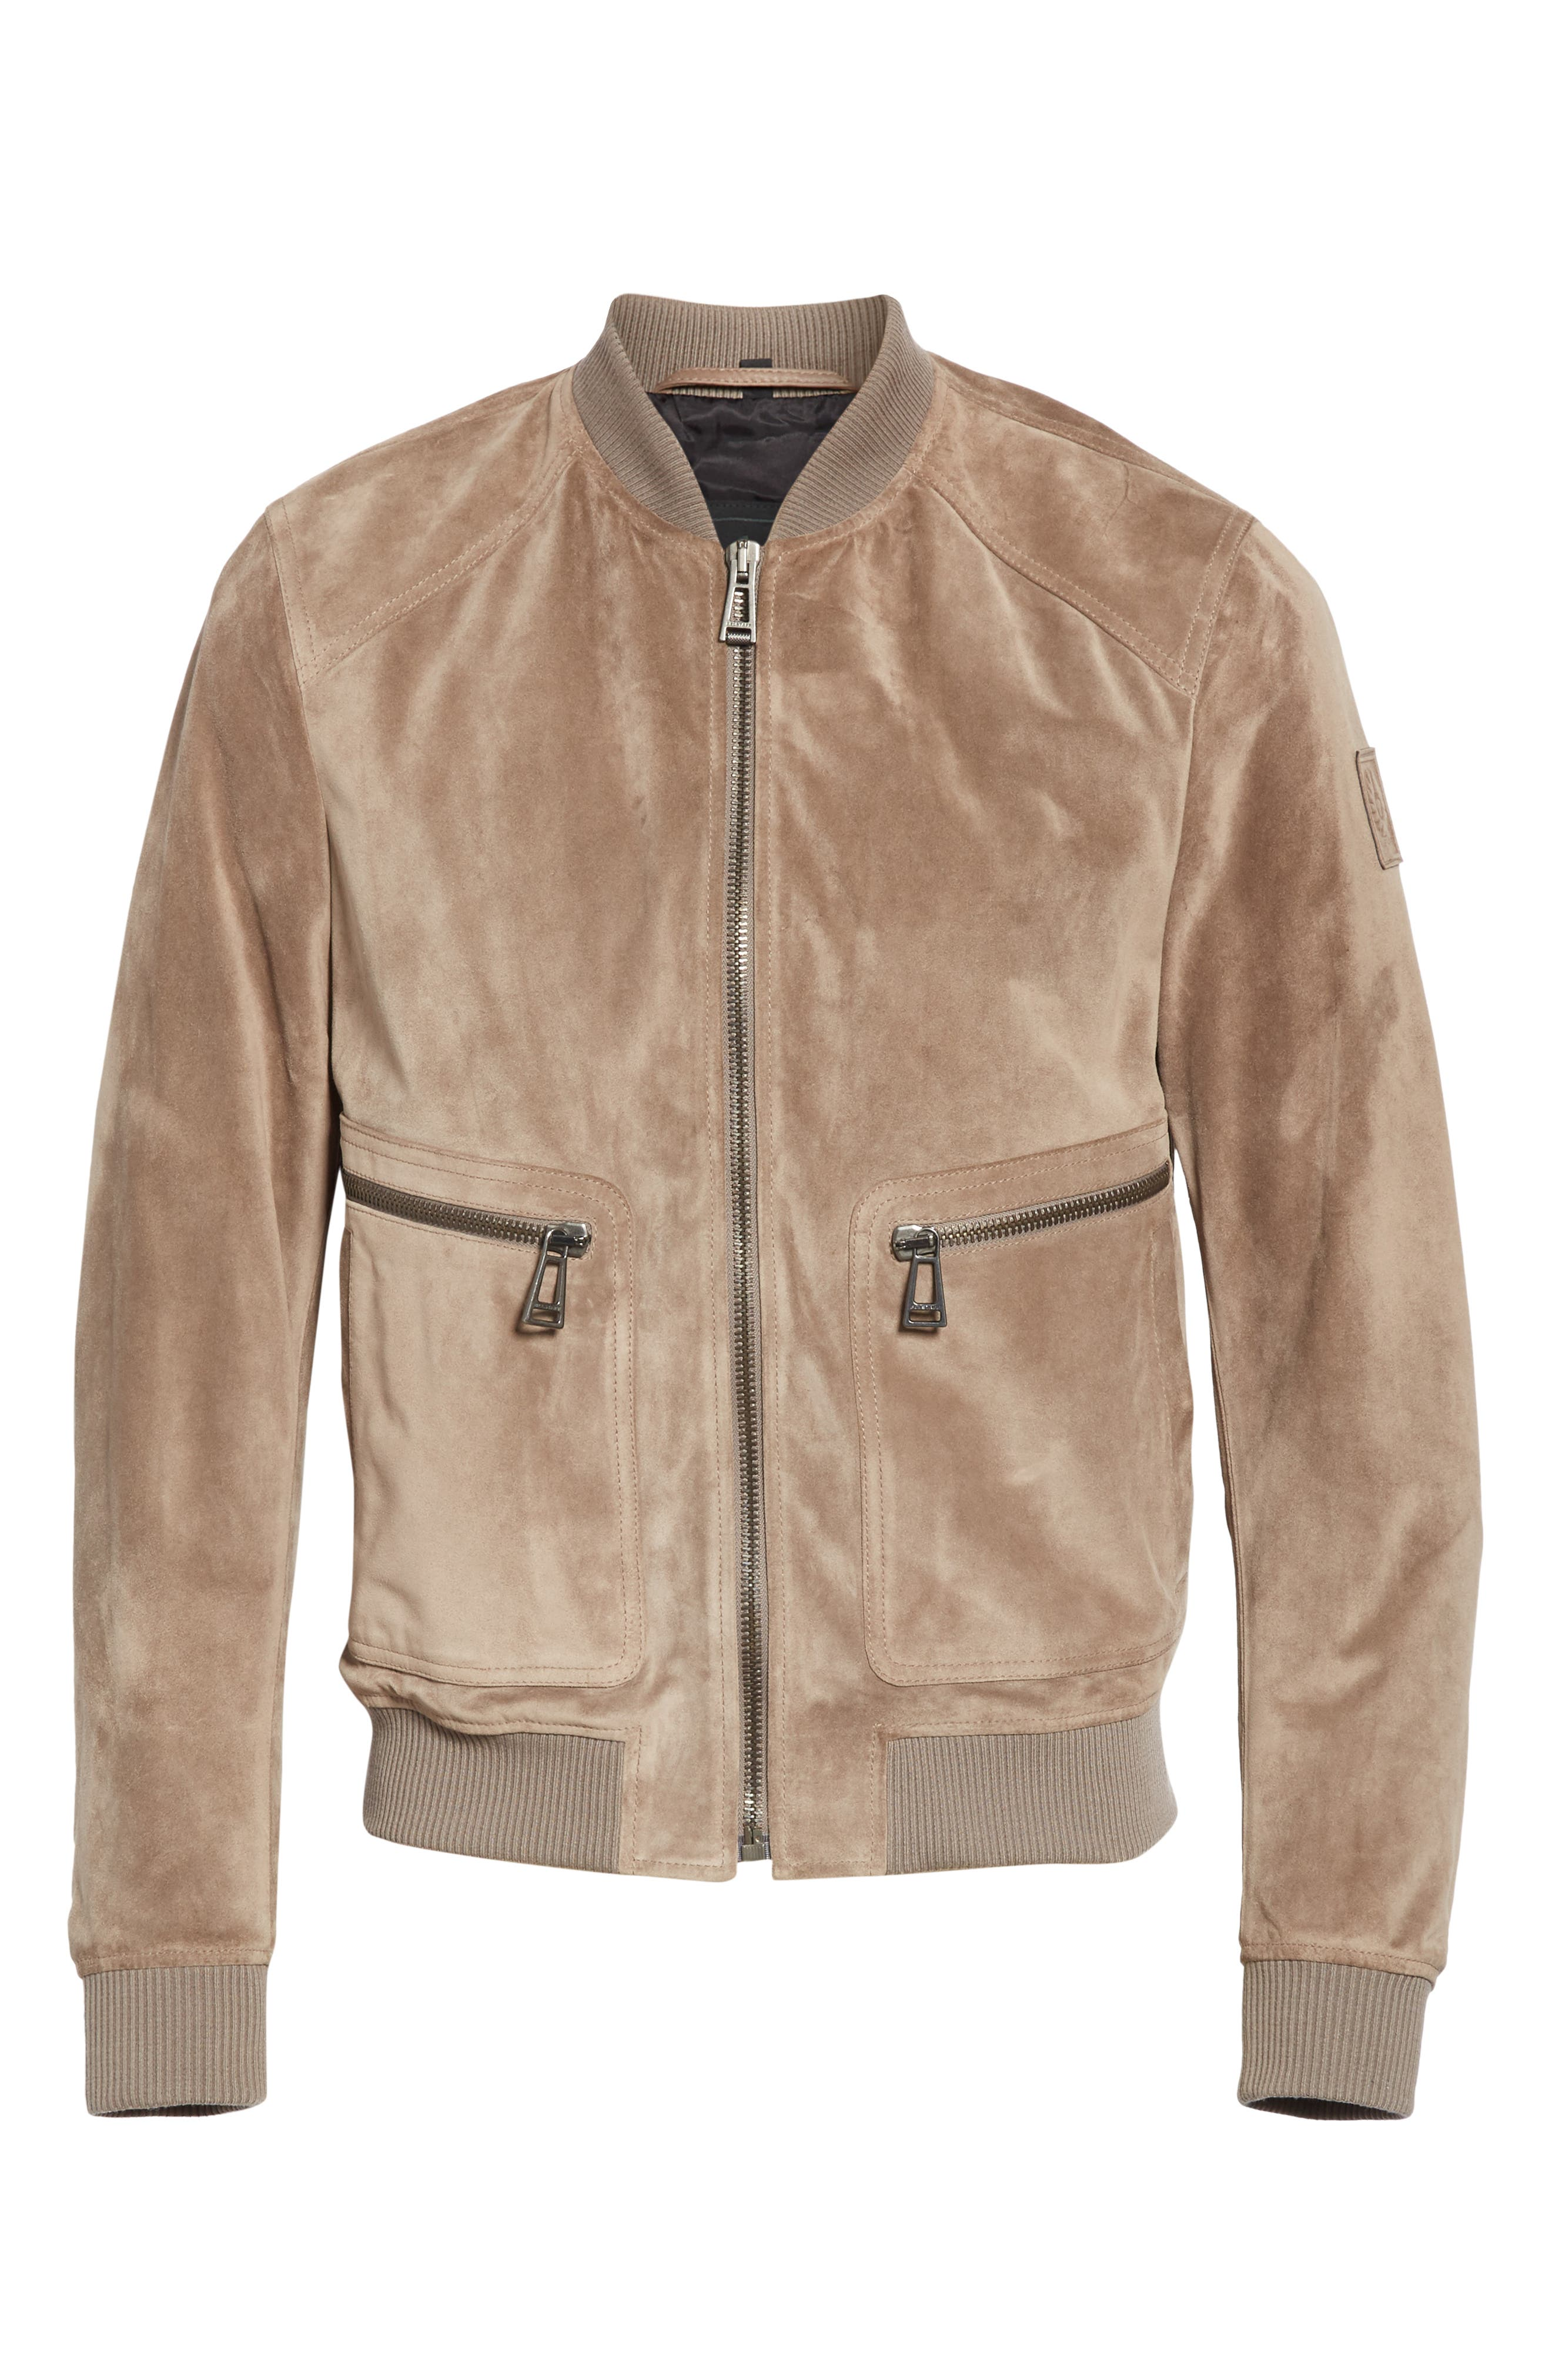 Winswell Suede Jacket,                             Alternate thumbnail 5, color,                             DRIFTWOOD